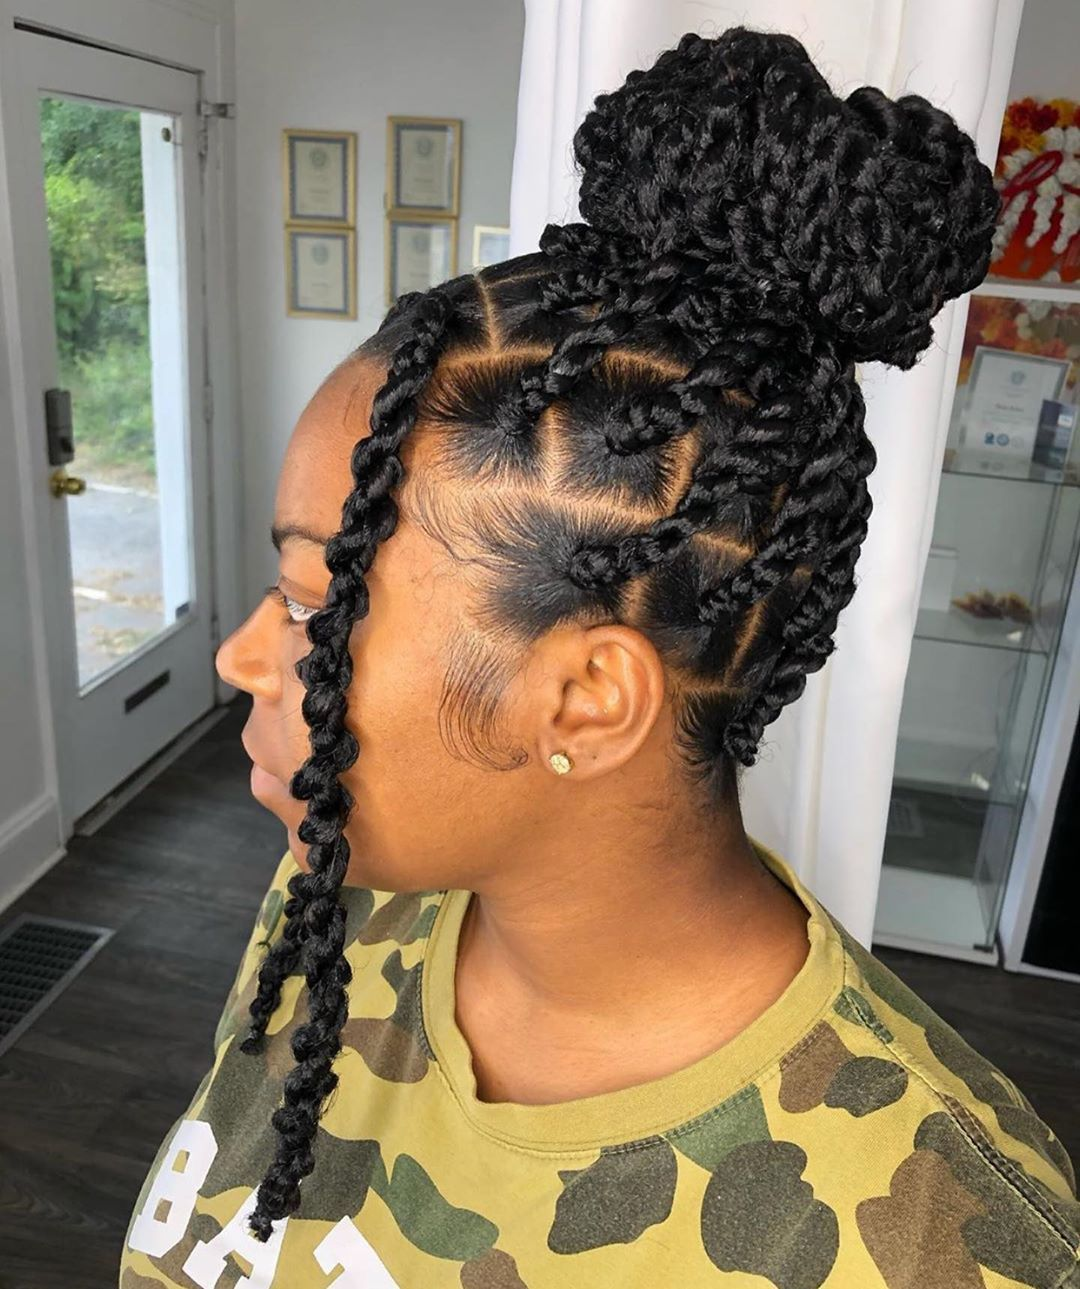 2021 Black Braided Hairstyles for Ladies: 45 Most Trendy Hairstyles